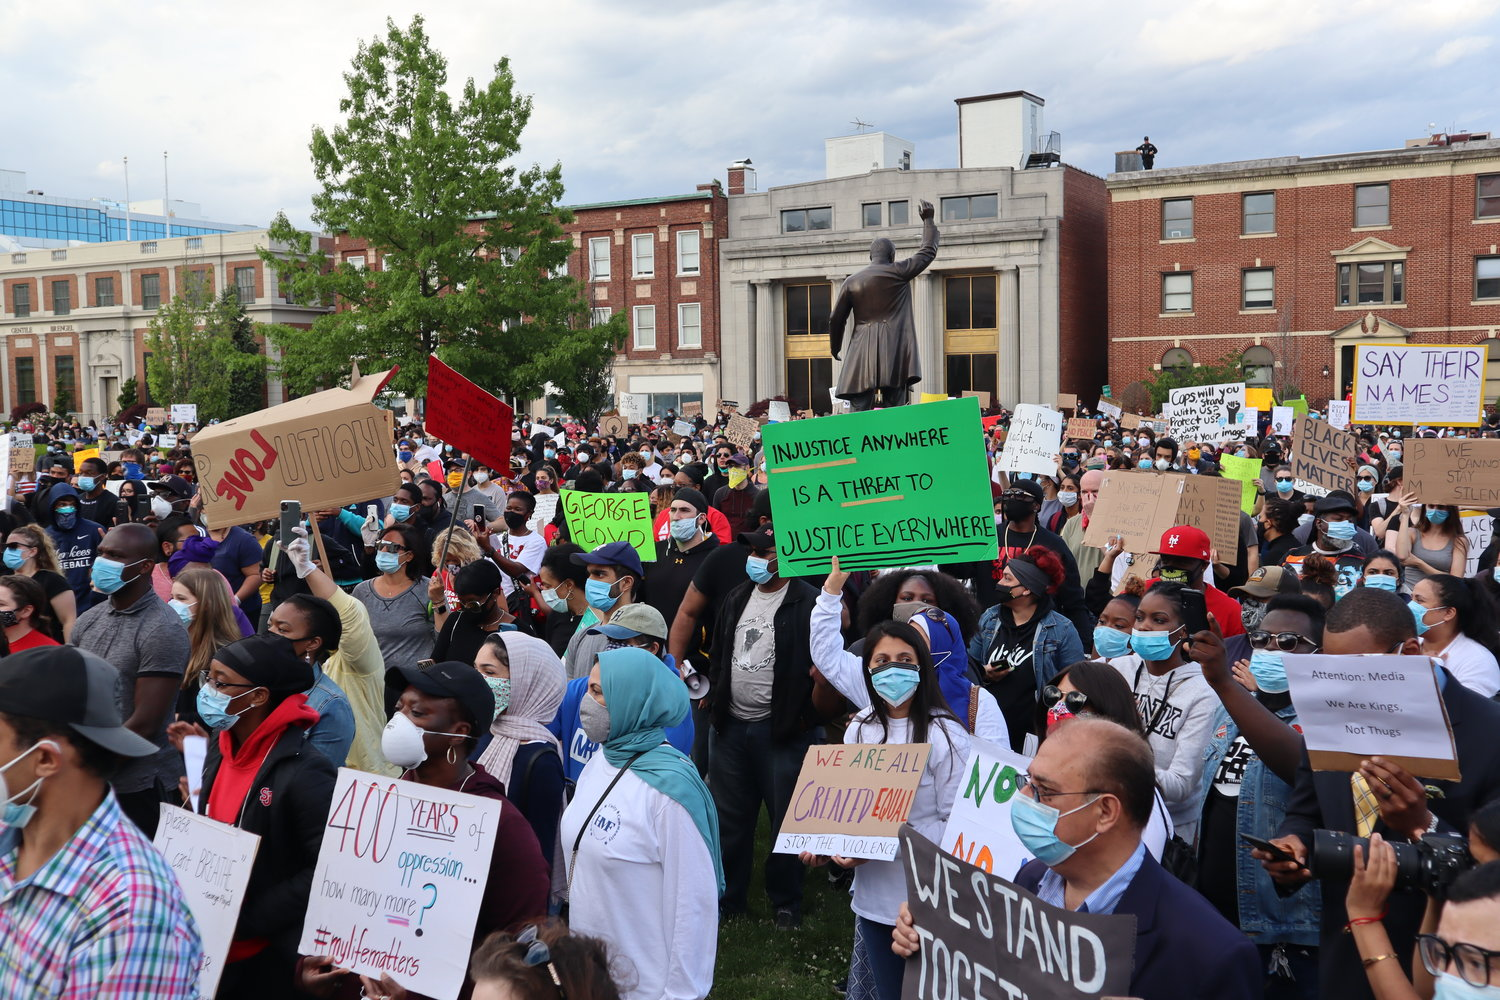 Nearly 1,000 protesters occupied the front lawn of the Nassau County Legislature and Executive Building on Monday.